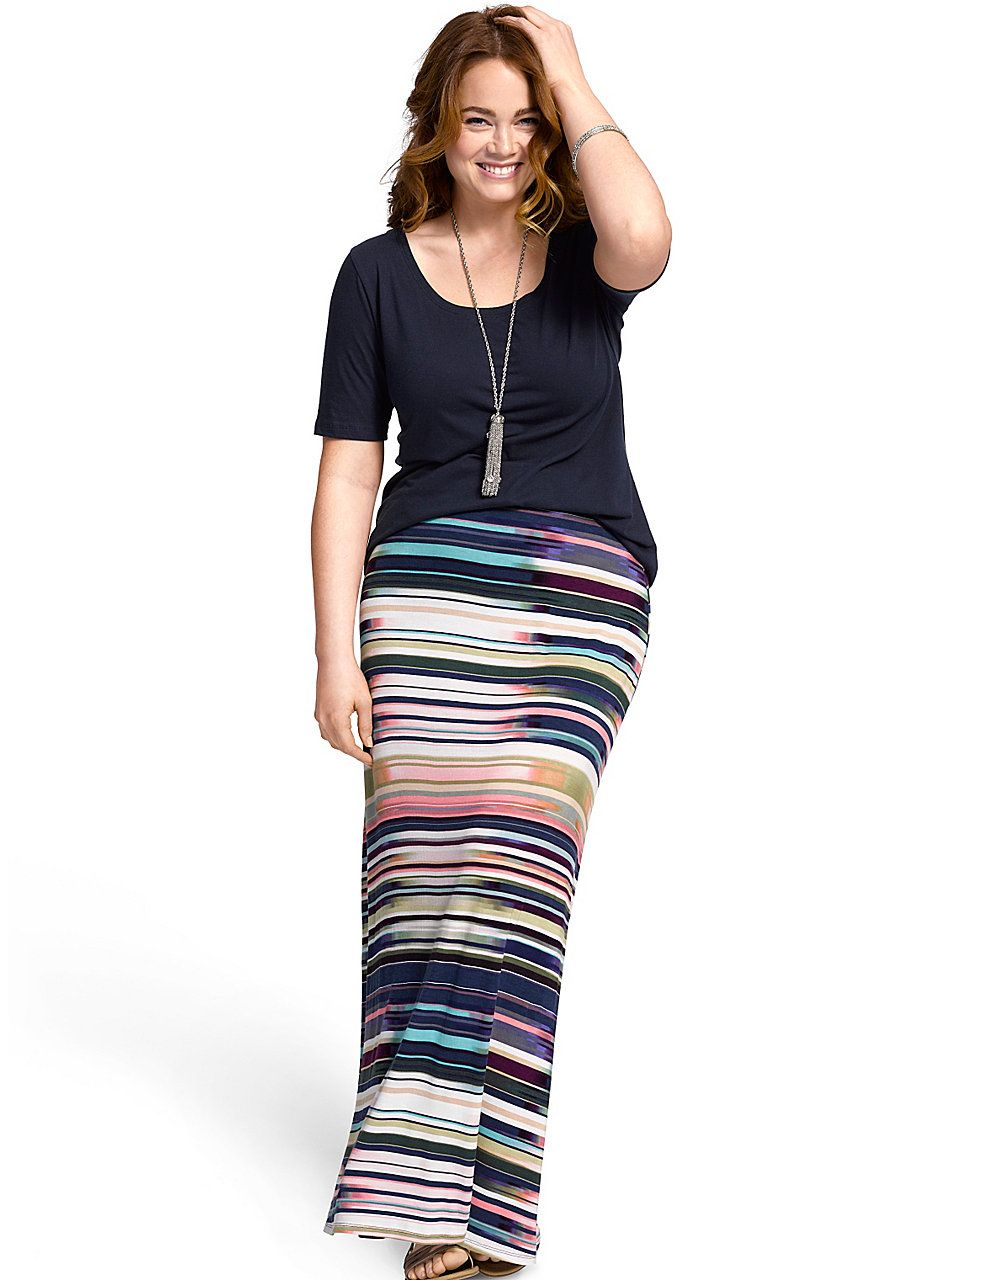 031329fbeb1 Striped maxi skirt by Lane Bryant